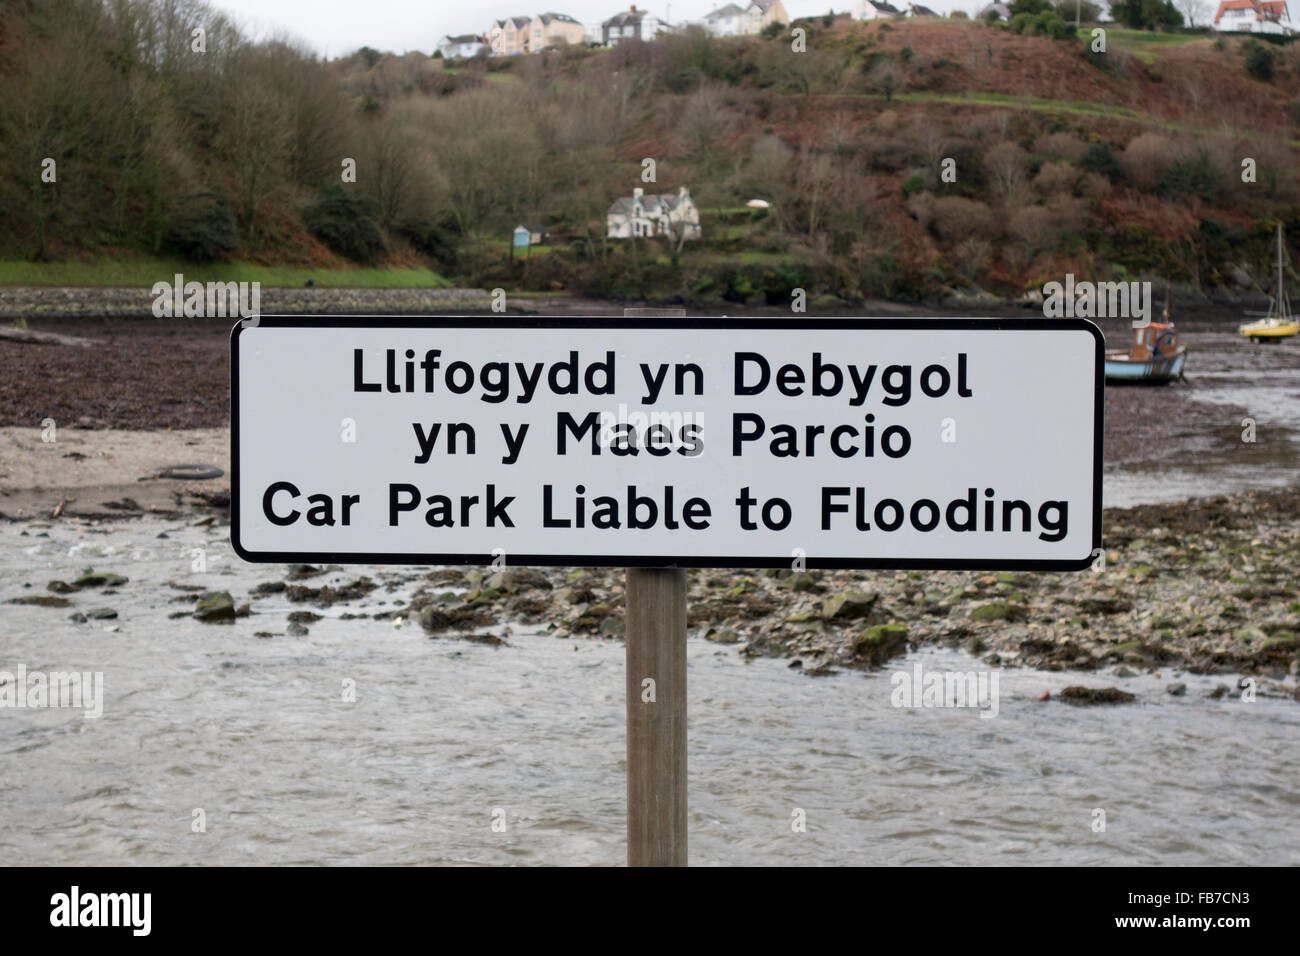 'Car Park Liable to Flooding' sign in Lower Town, Fishguard Stock Photo